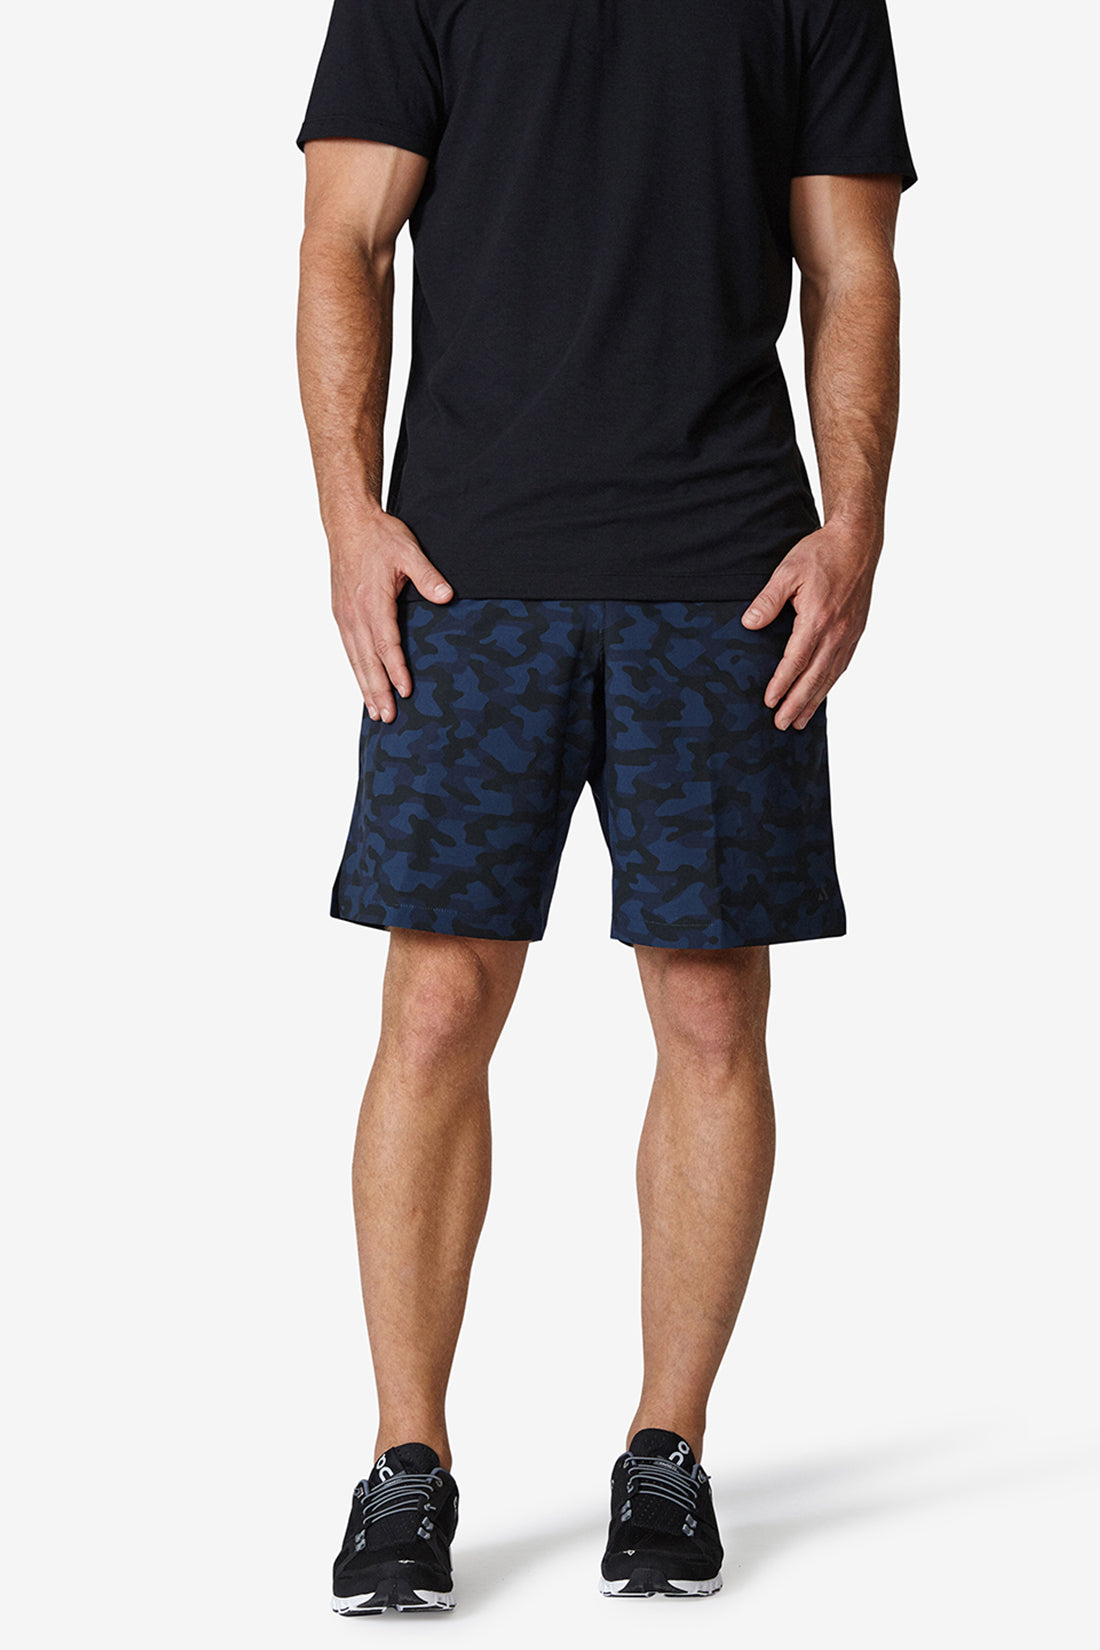 Men's performance shorts, black, lightweight, sweat wicking, high quality, solfire, skin-like, Navy camo shorts